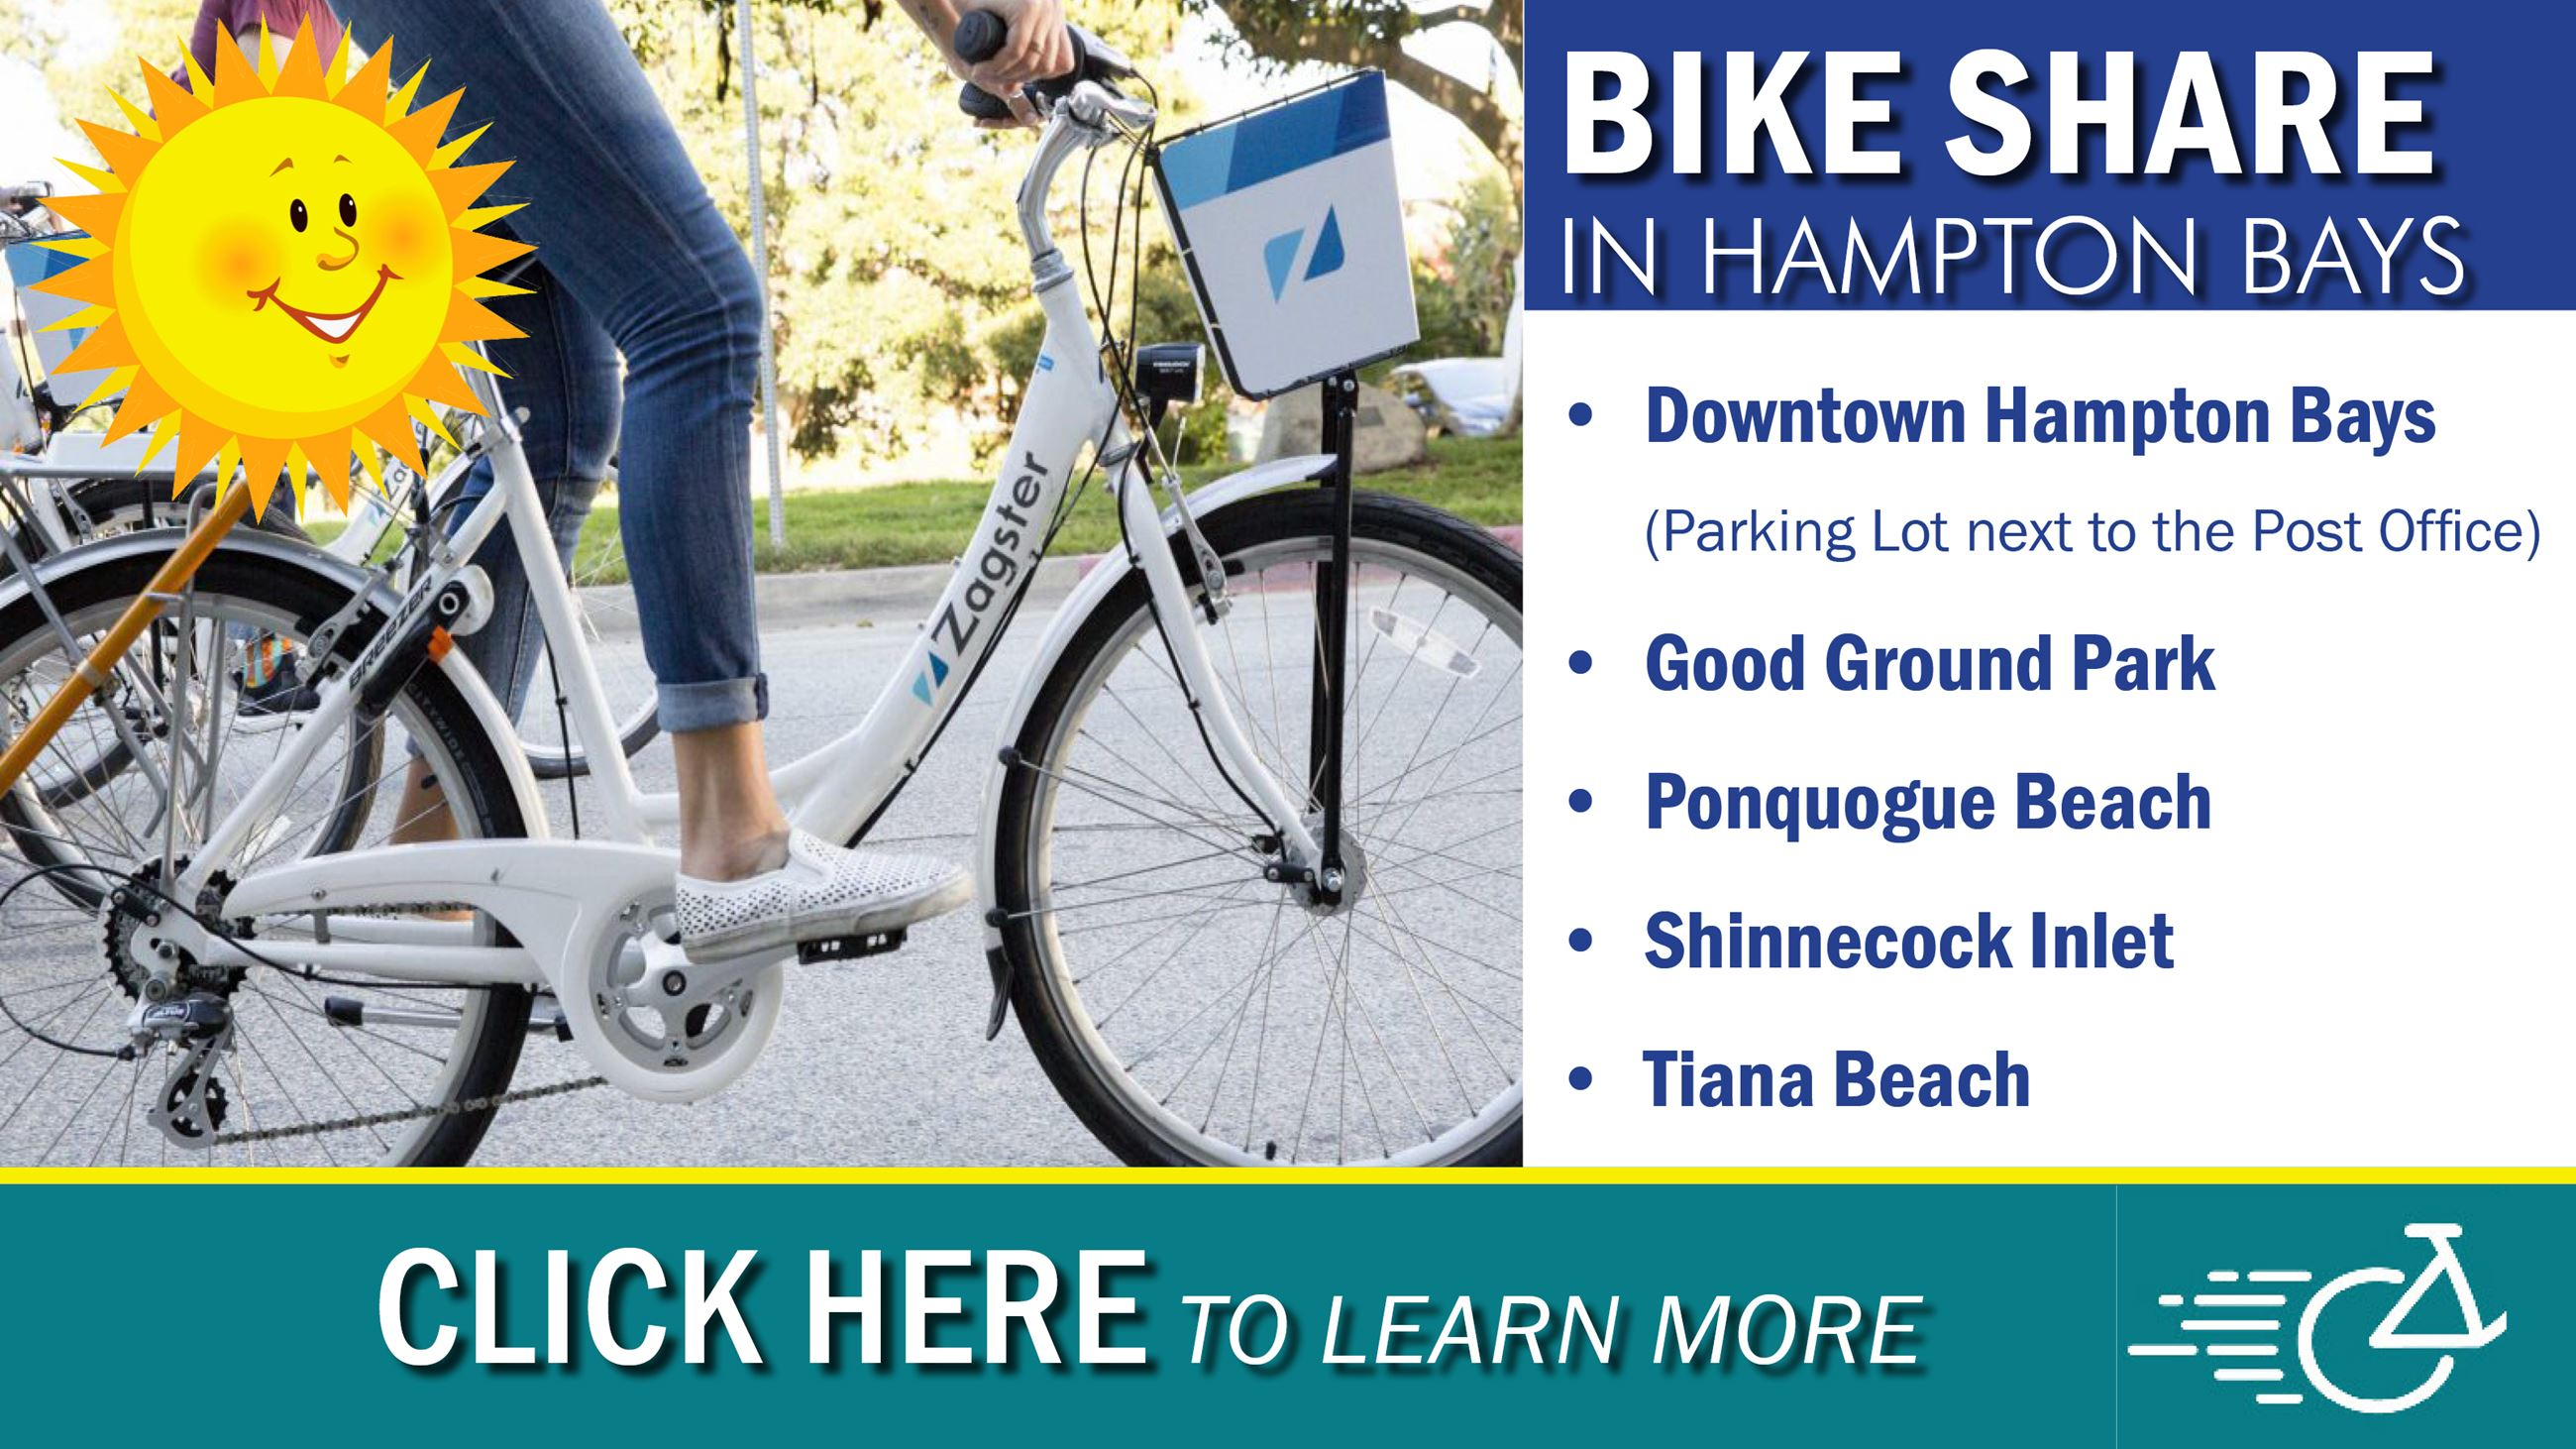 TOS Bike Share - Hampton Bays